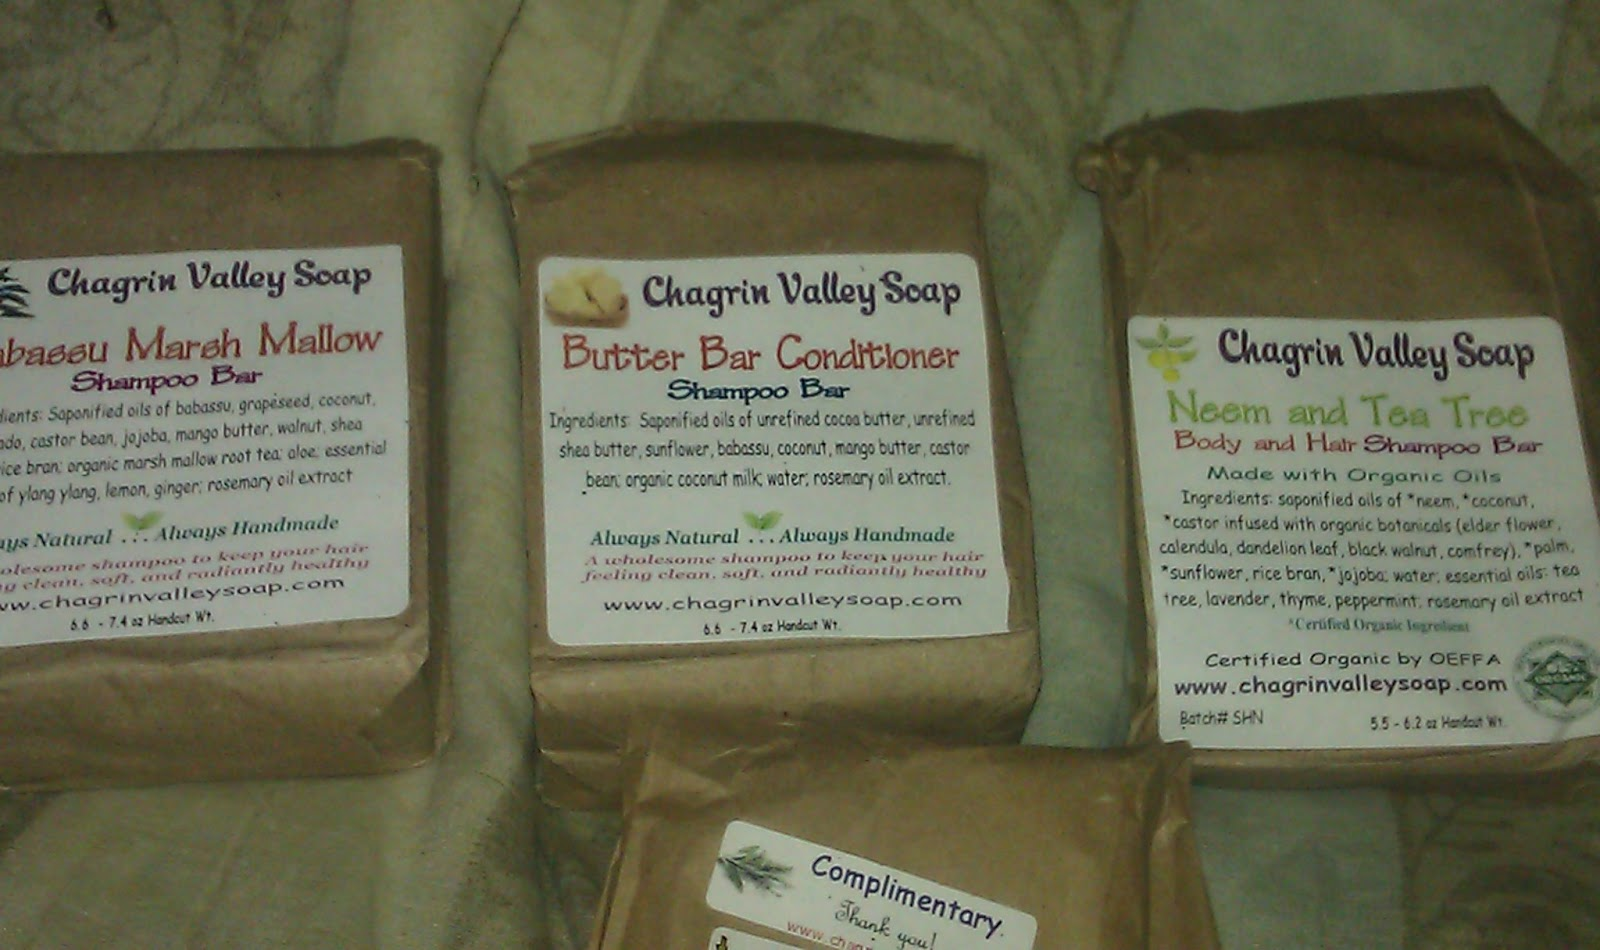 RavenCurly: Chagrin Valley Shampoo Bars